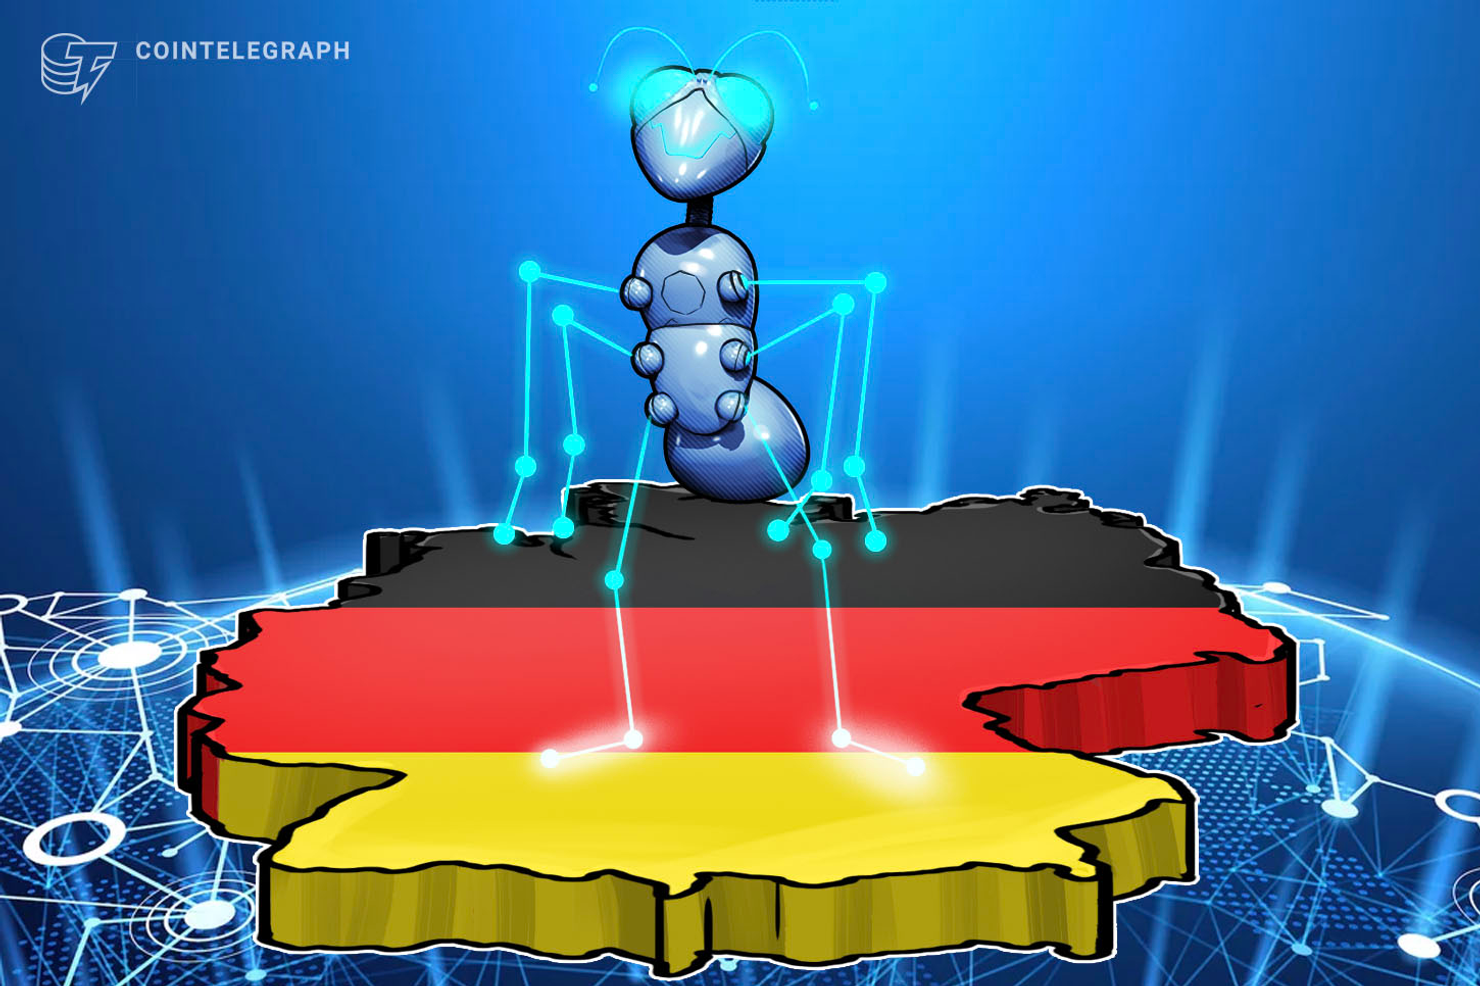 Germany: CDU and CSU Union to Integrate Blockchain Into Public Services